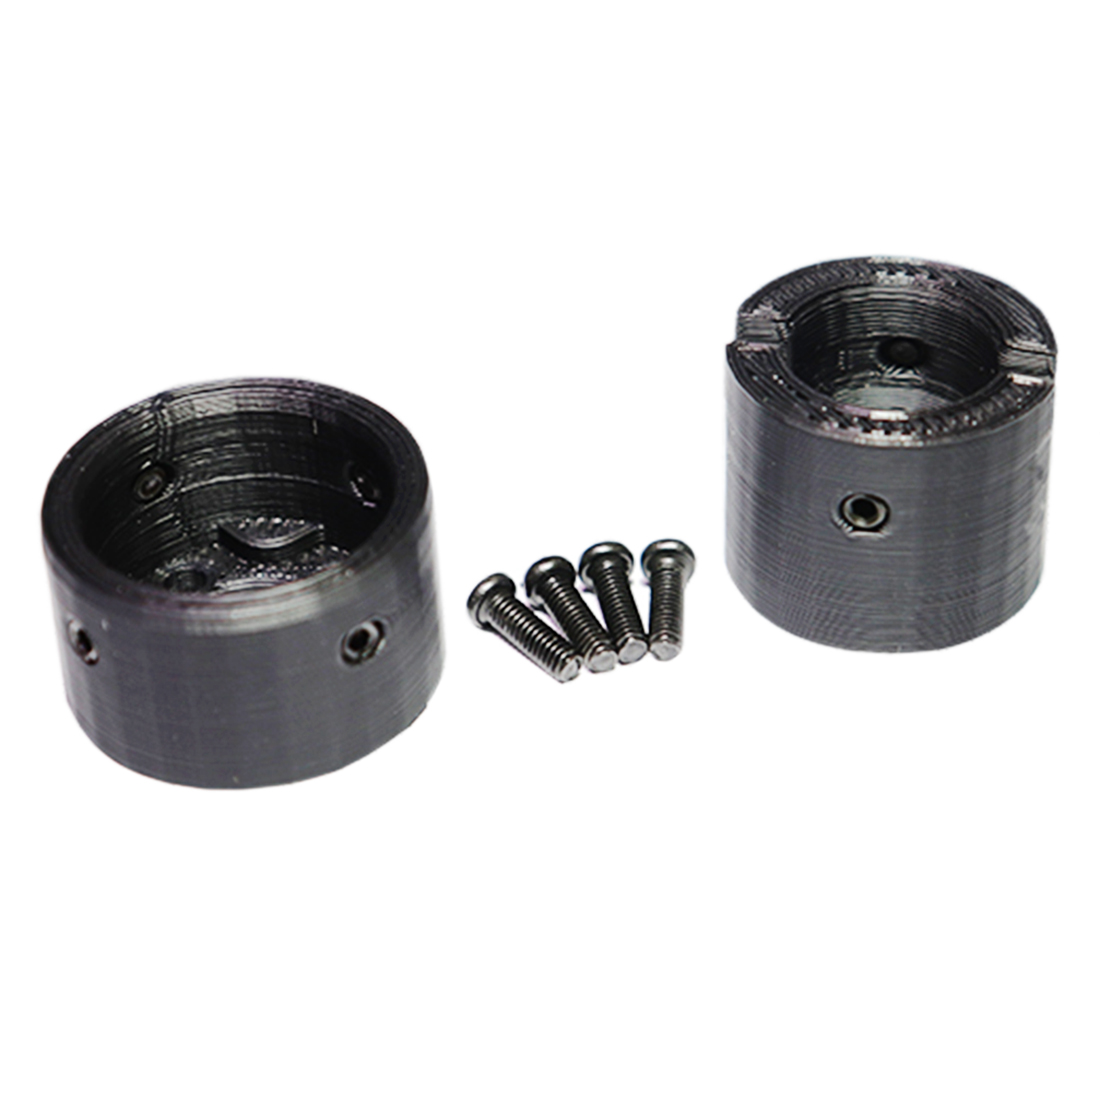 For SLR Receiver Gearbox Chamber With Casing Pipe Firm Module For Jingji SLR Gearbox Receiver Modification Upgrade - Black